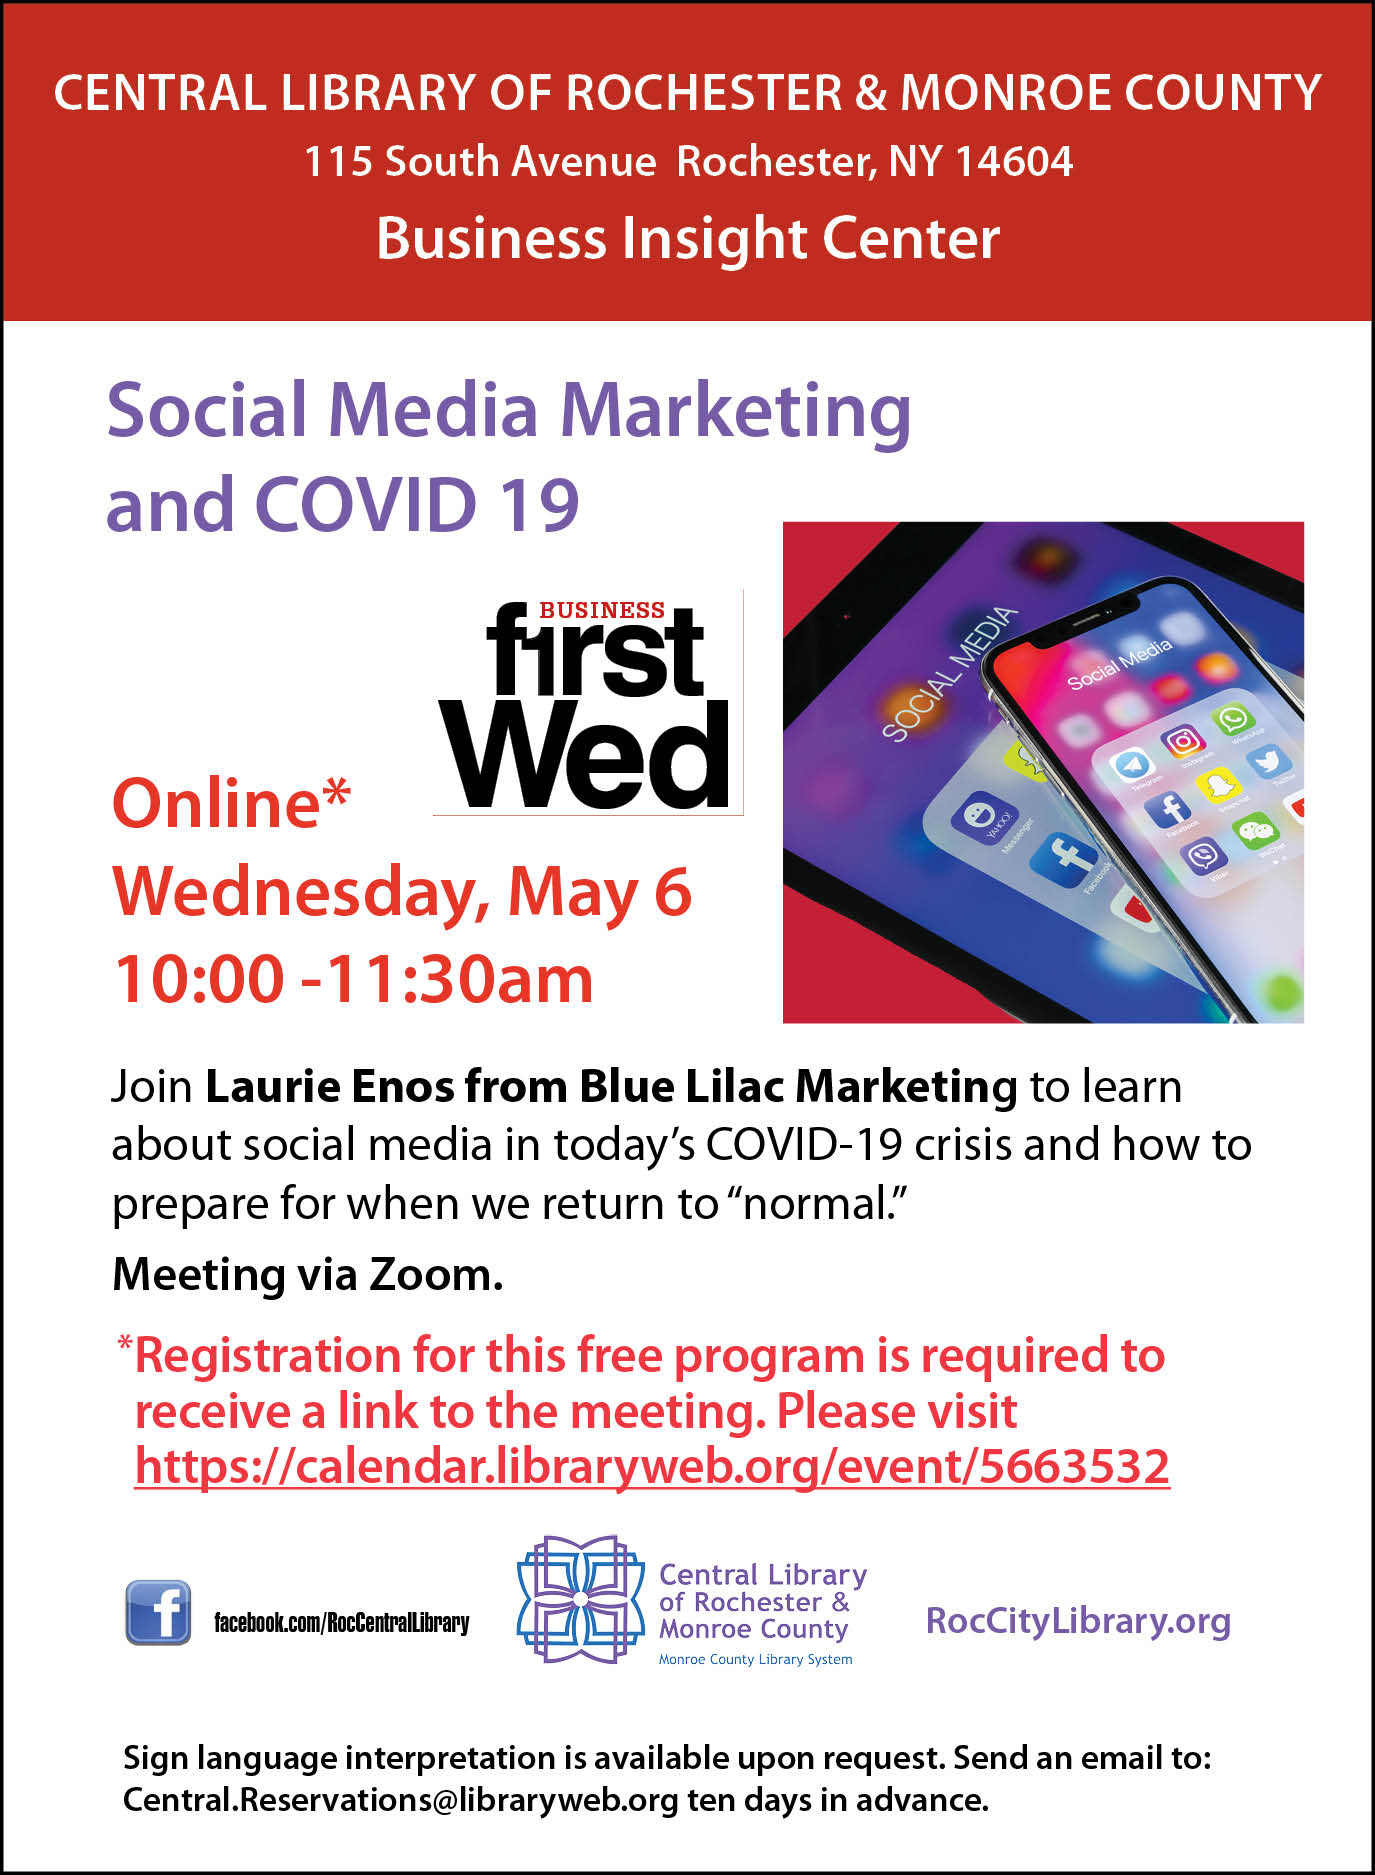 First Wednesdays for Small Business - Social Media Marketing During COVID-19